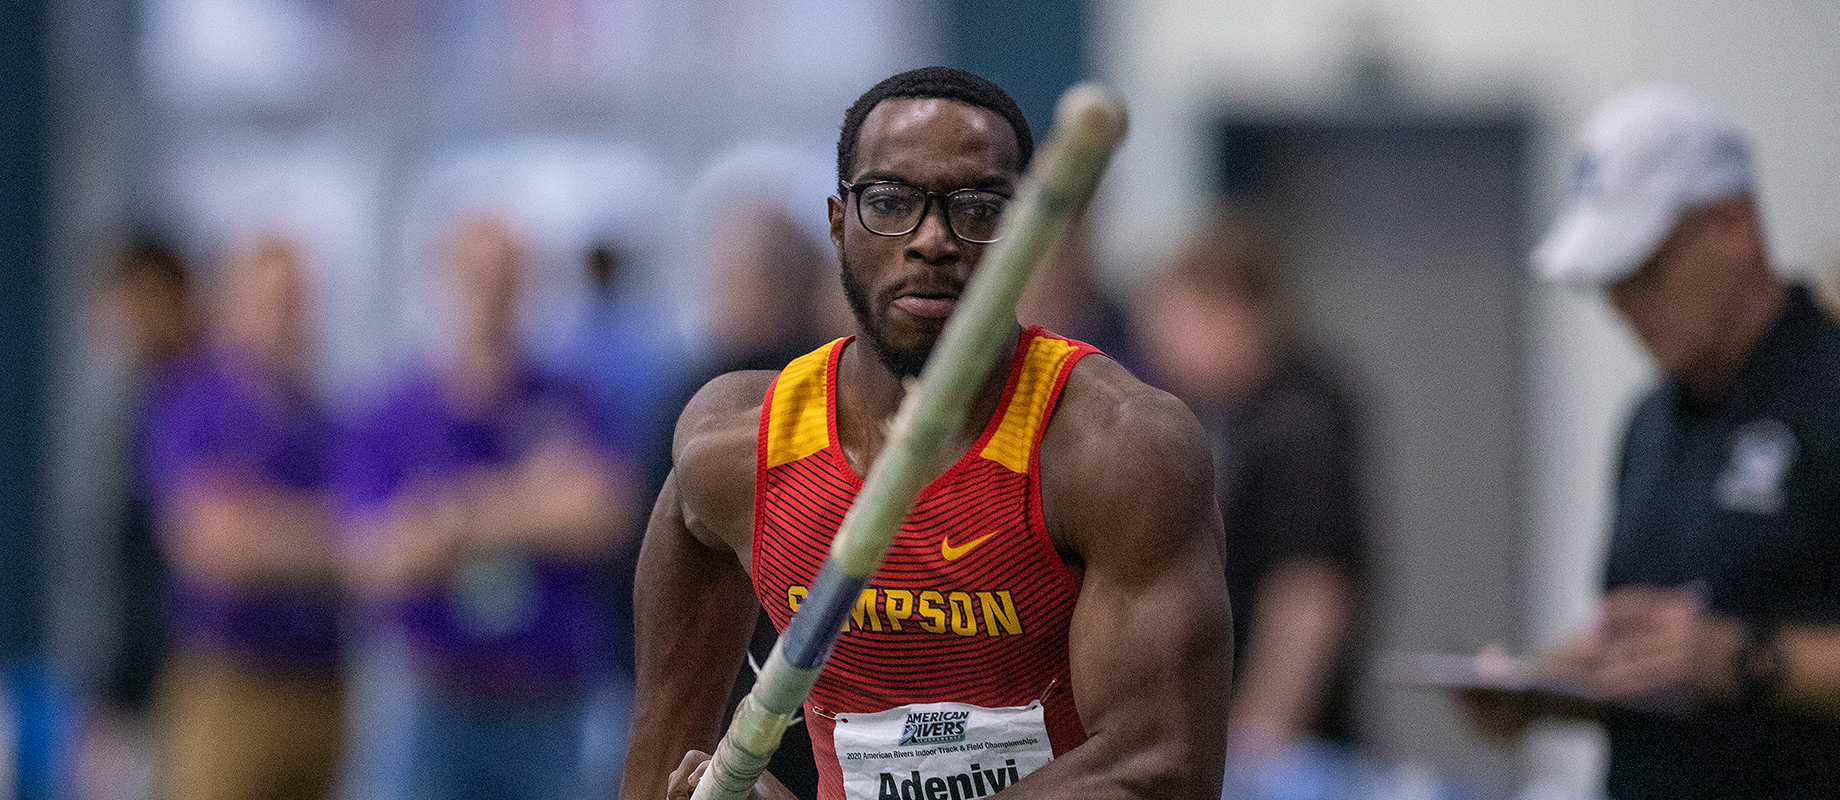 Simpson College's Sam Adeniyi competes in the pole vault